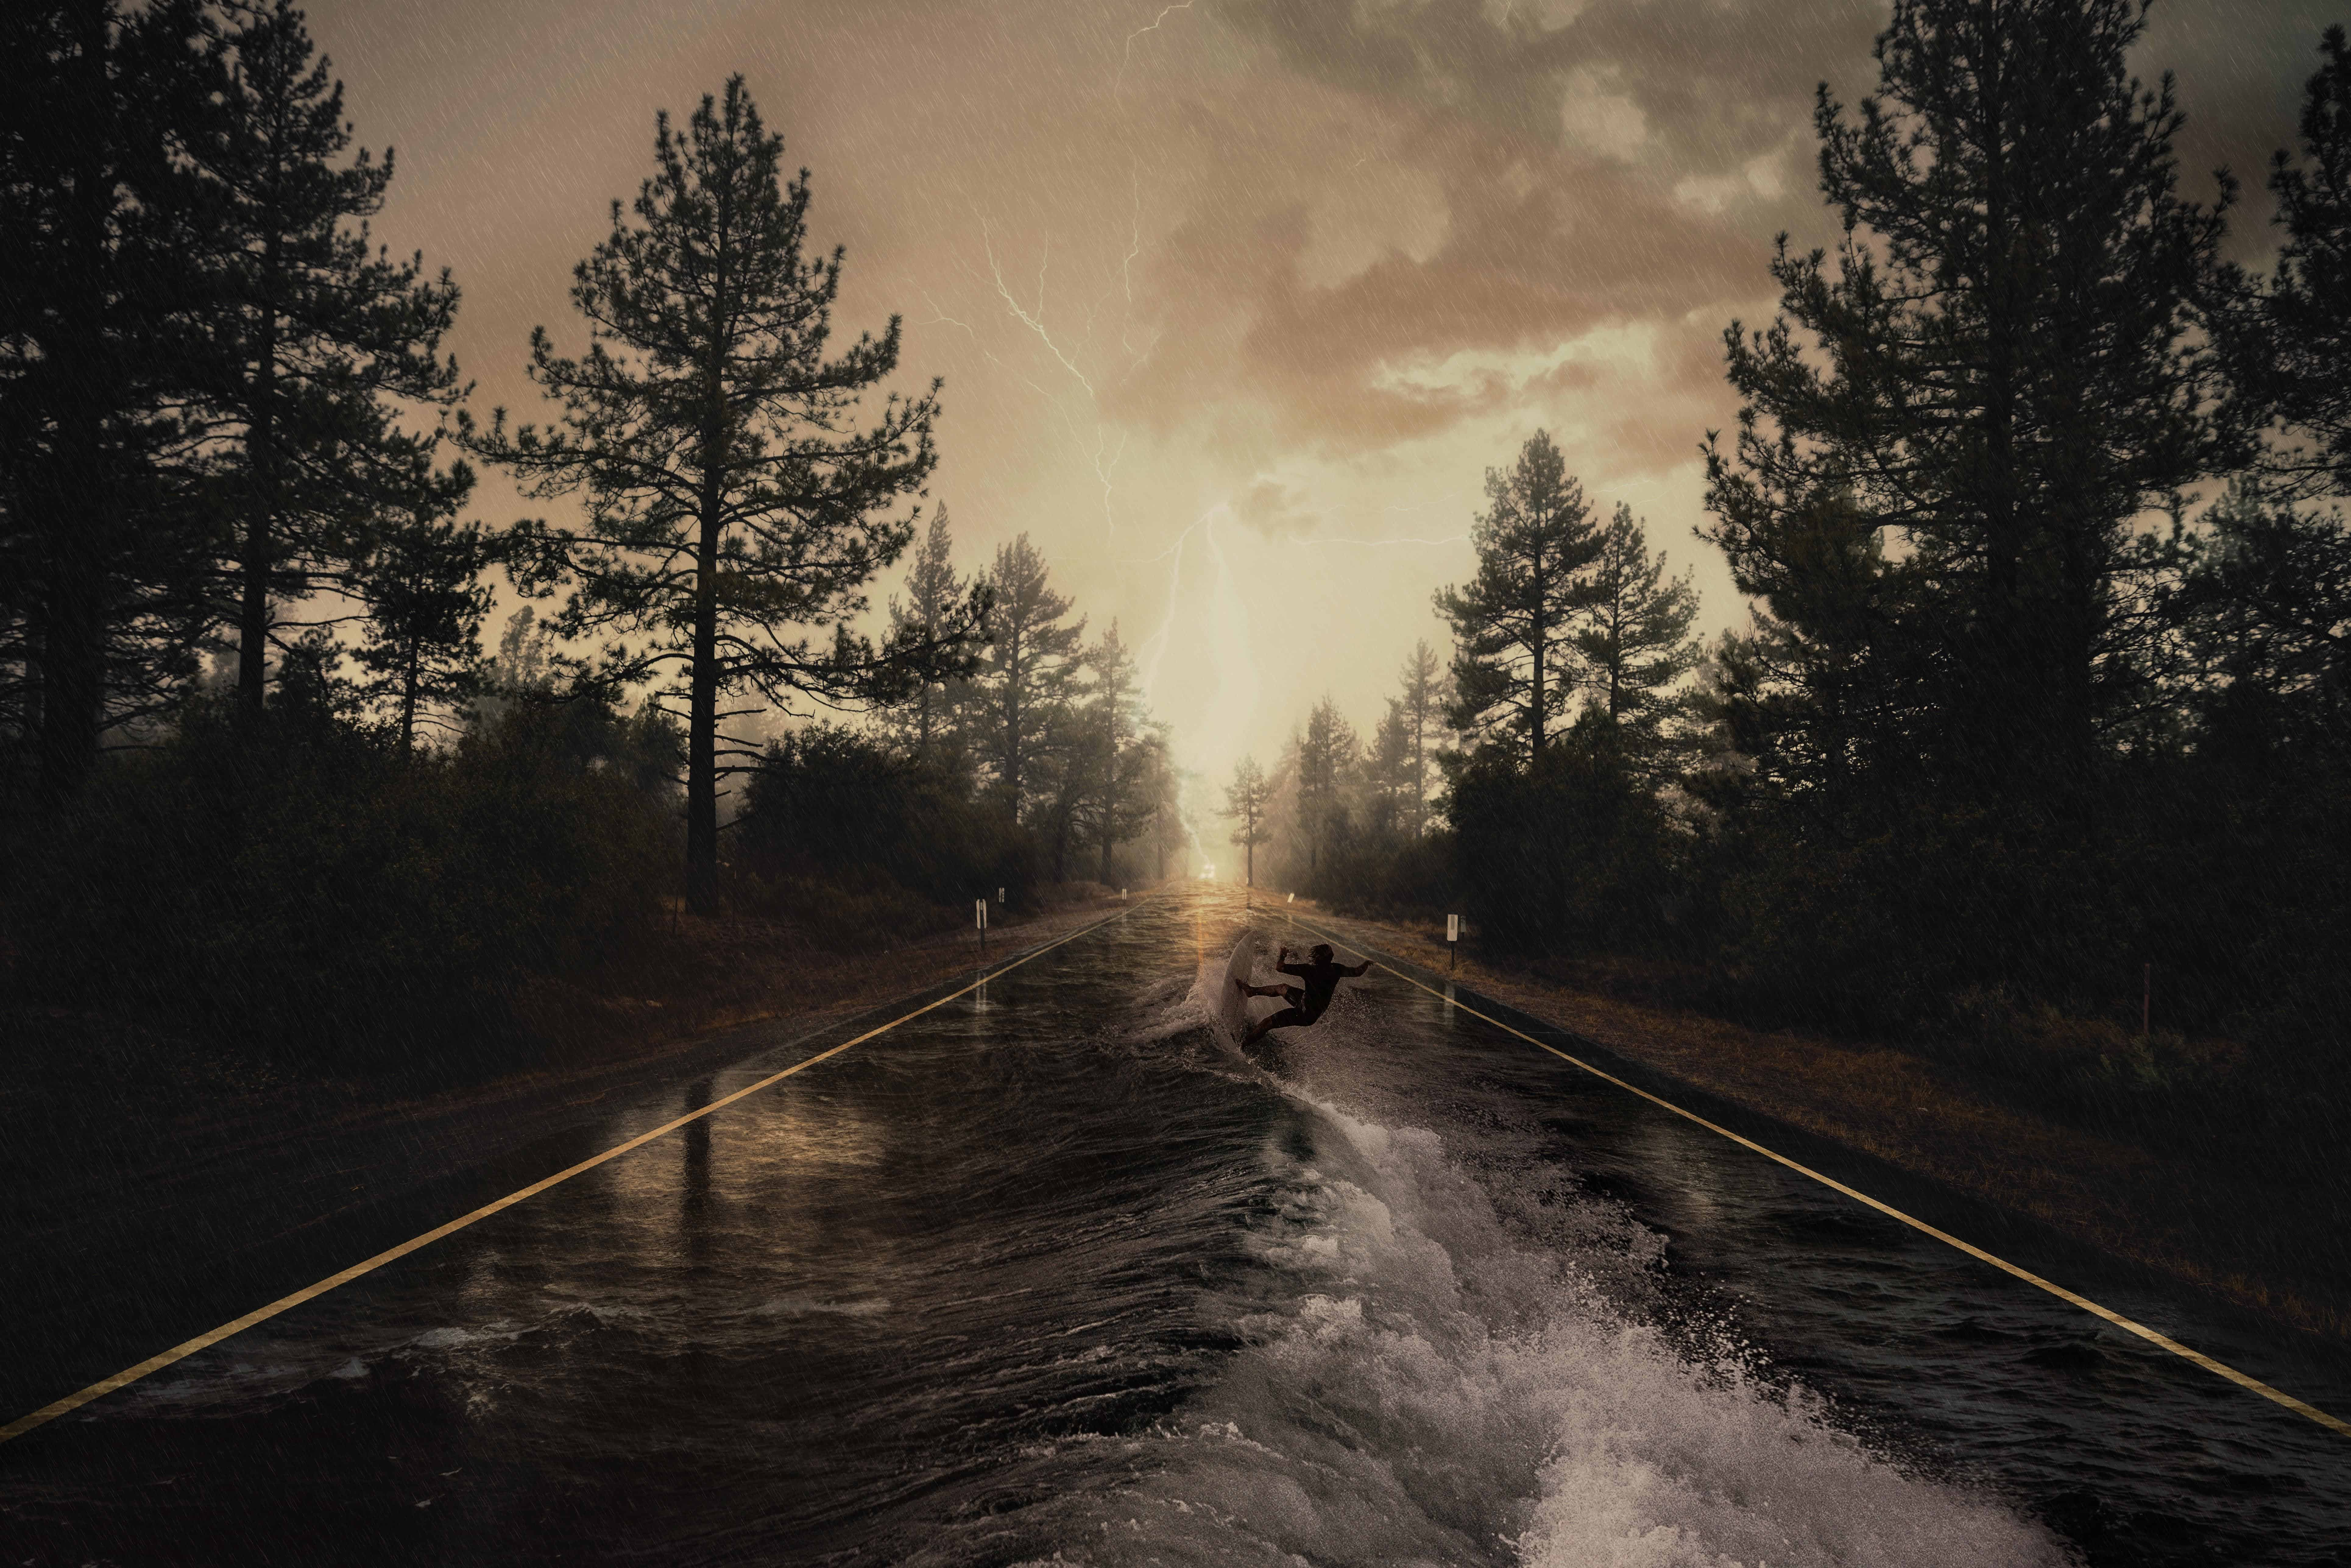 How to Create a Flooded Road in Photoshop